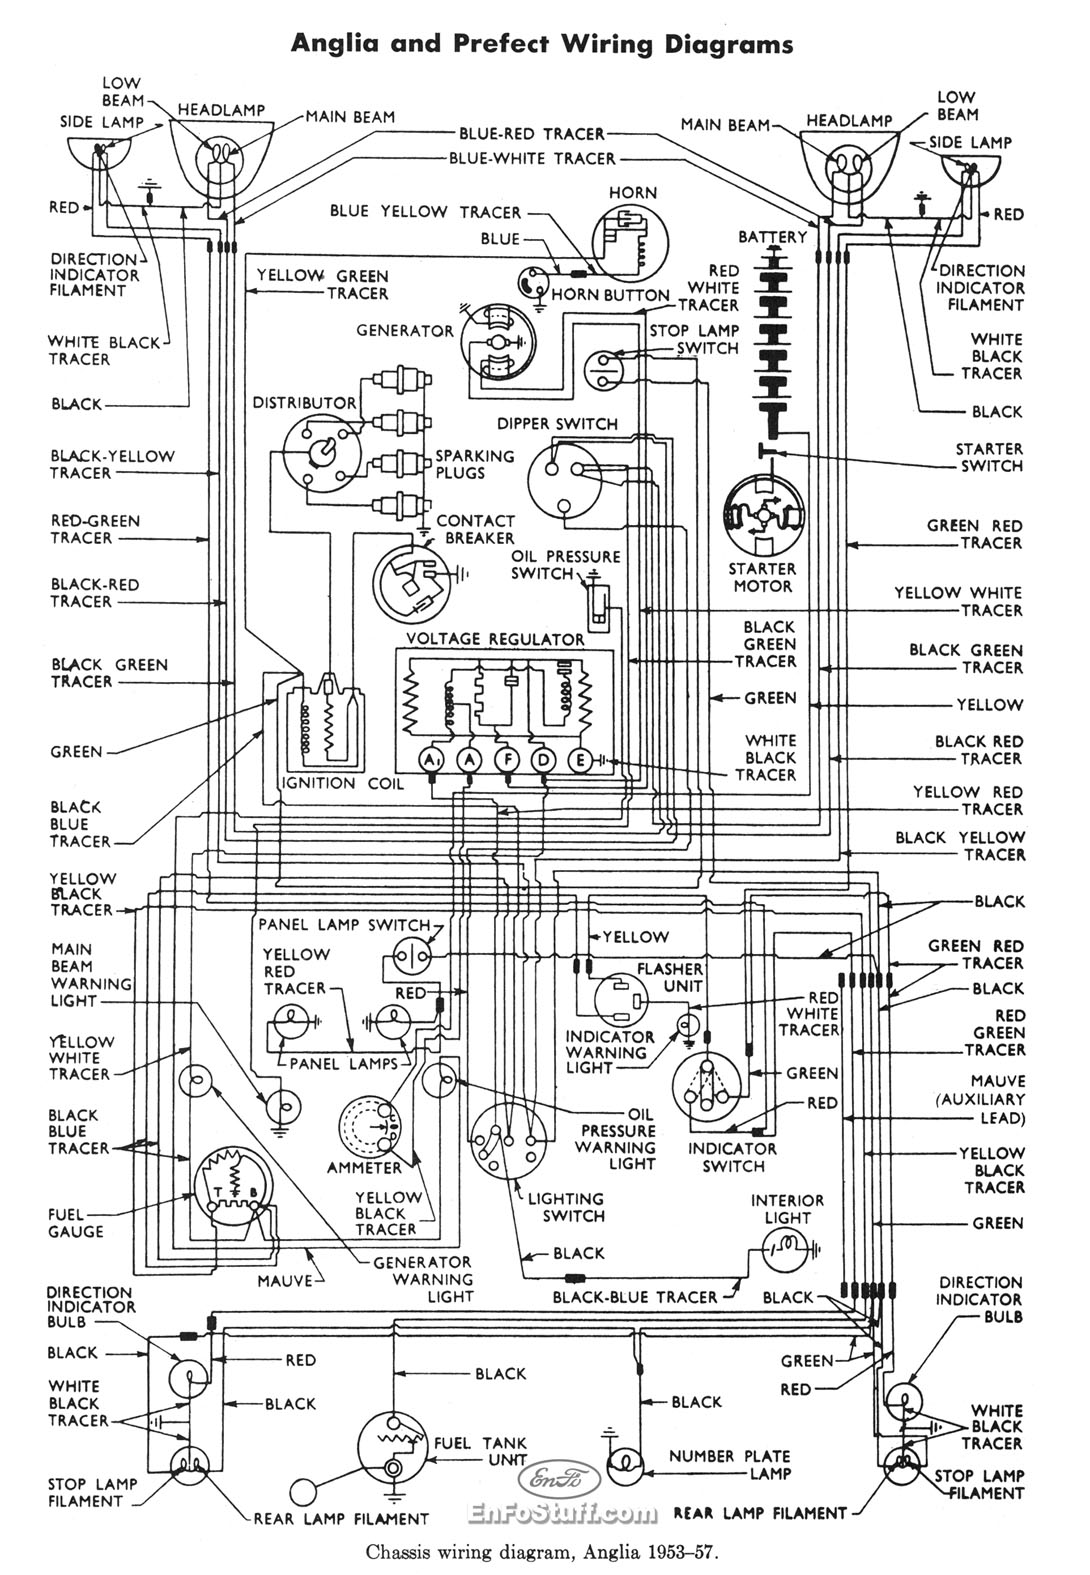 Related with ford f800 wiring diagram